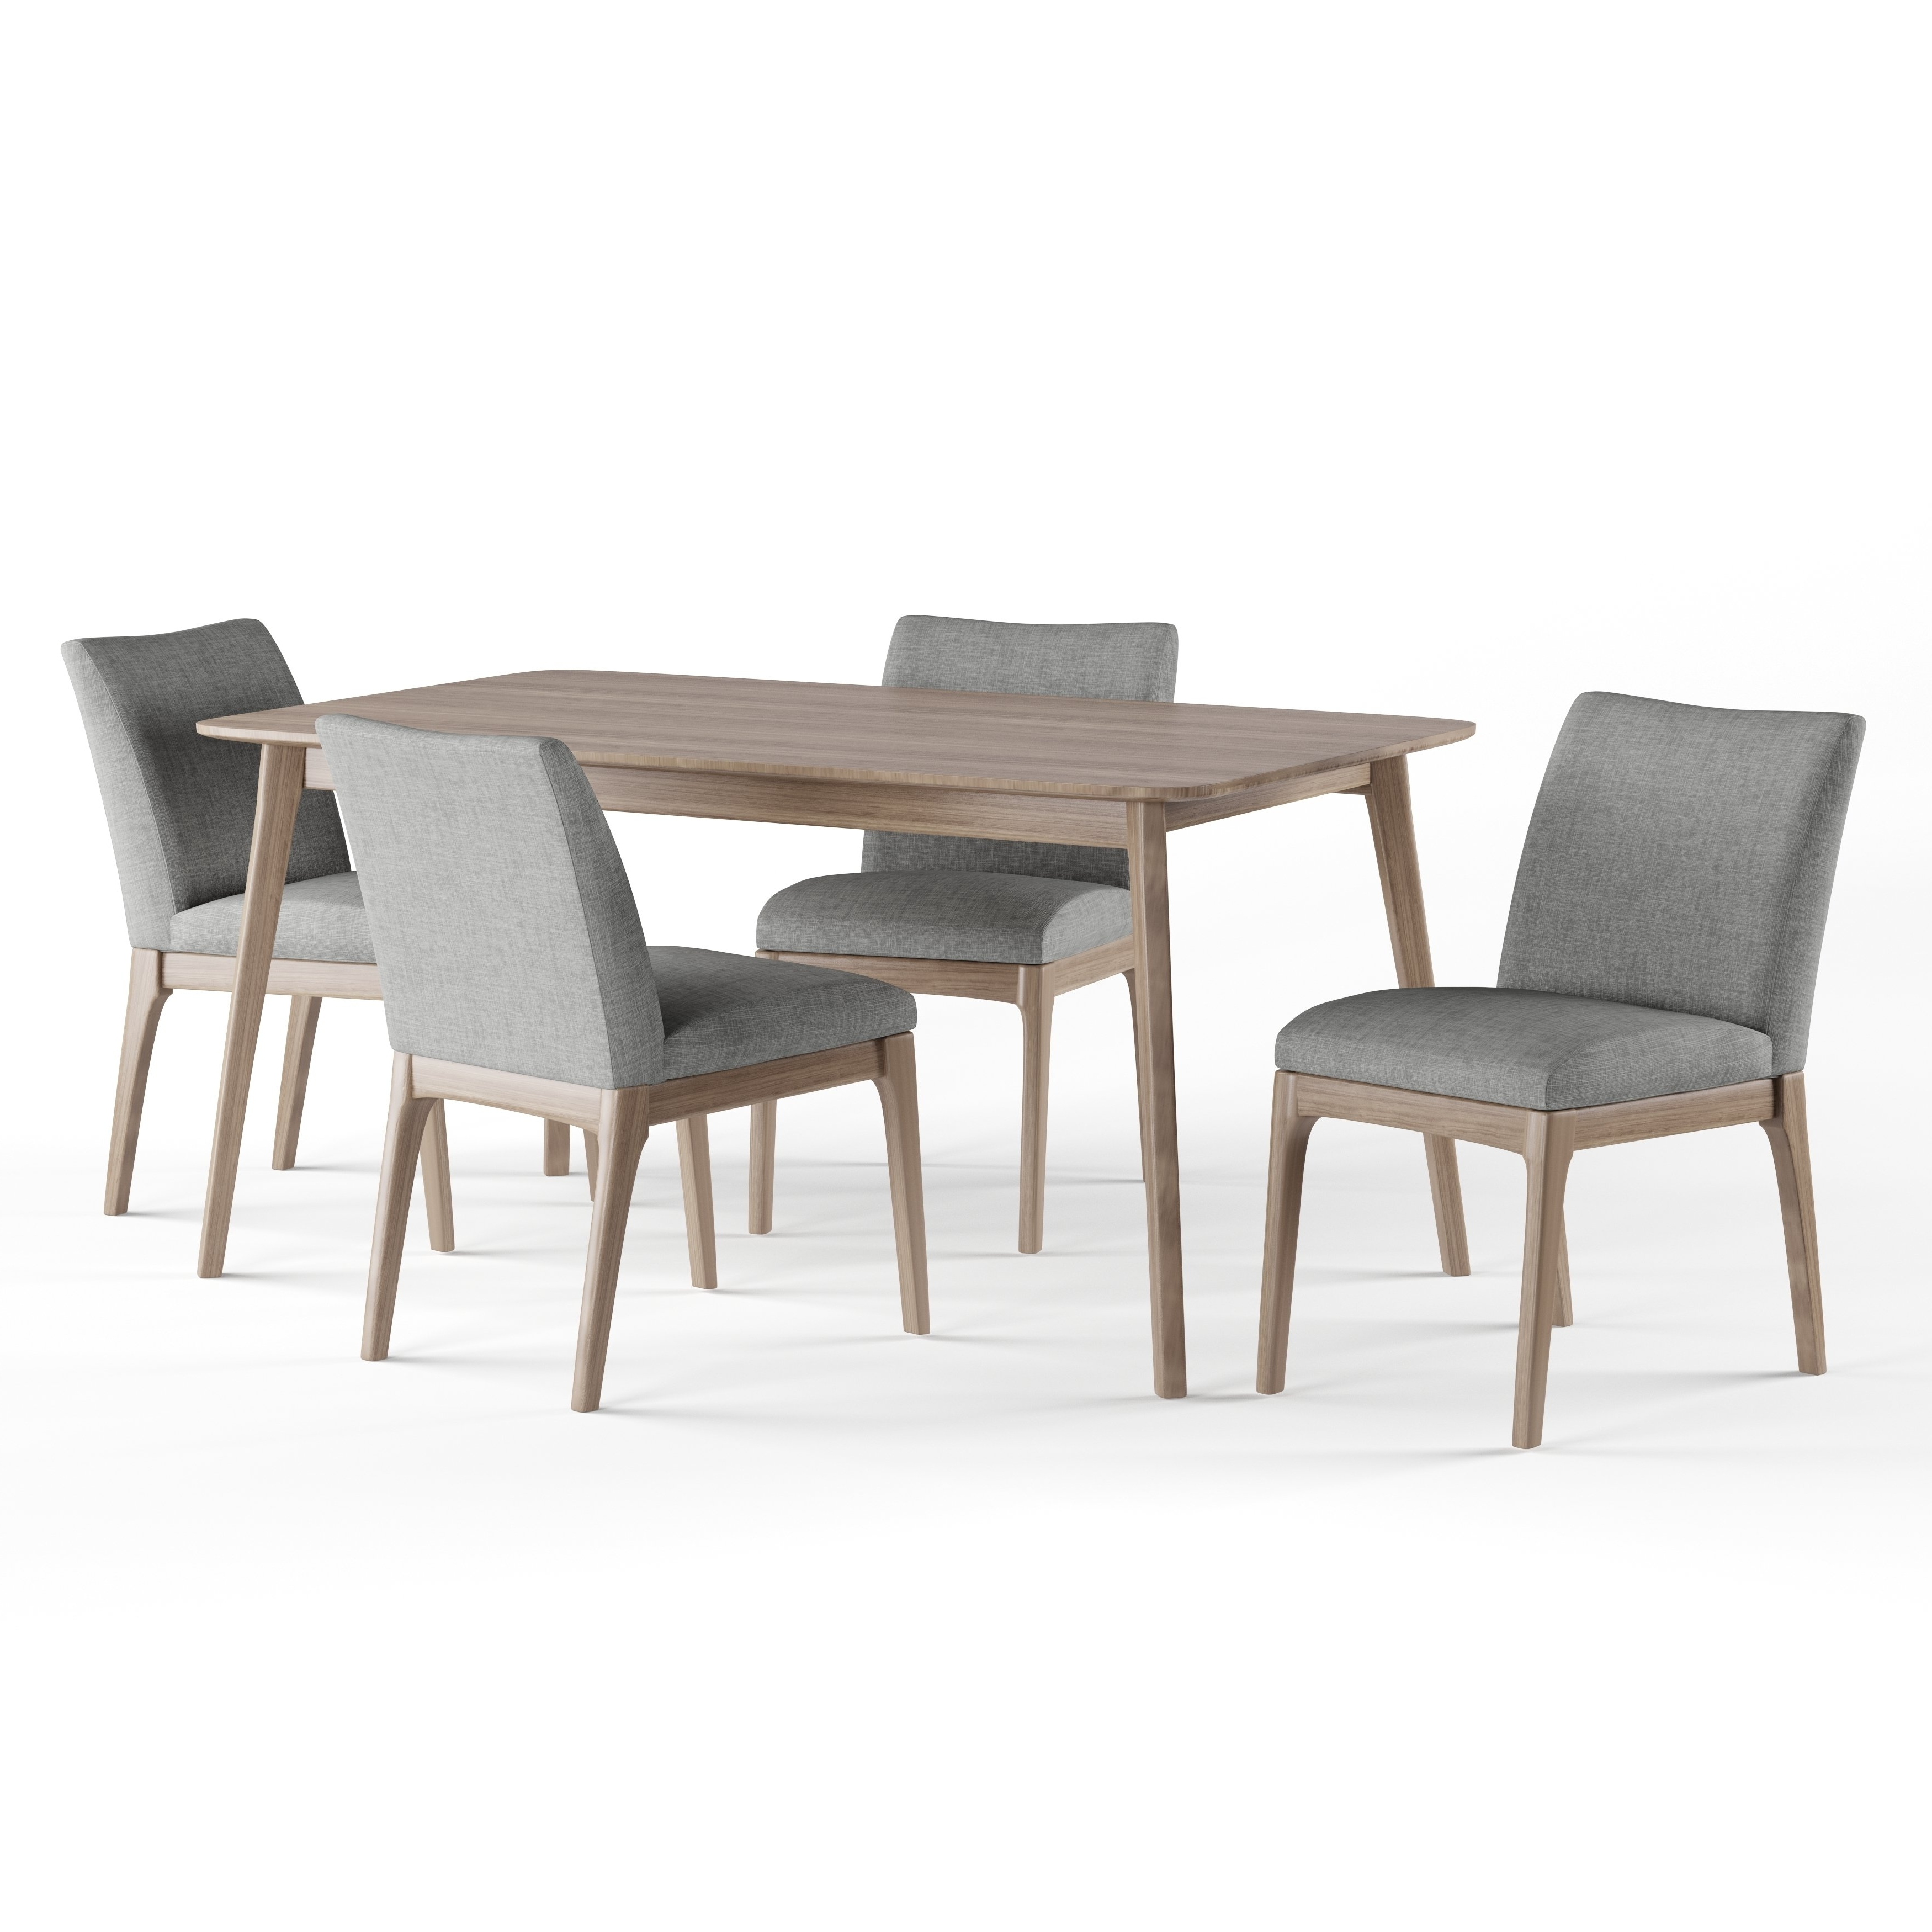 Buy Kitchen & Dining Room Sets Online At Overstock (View 6 of 25)